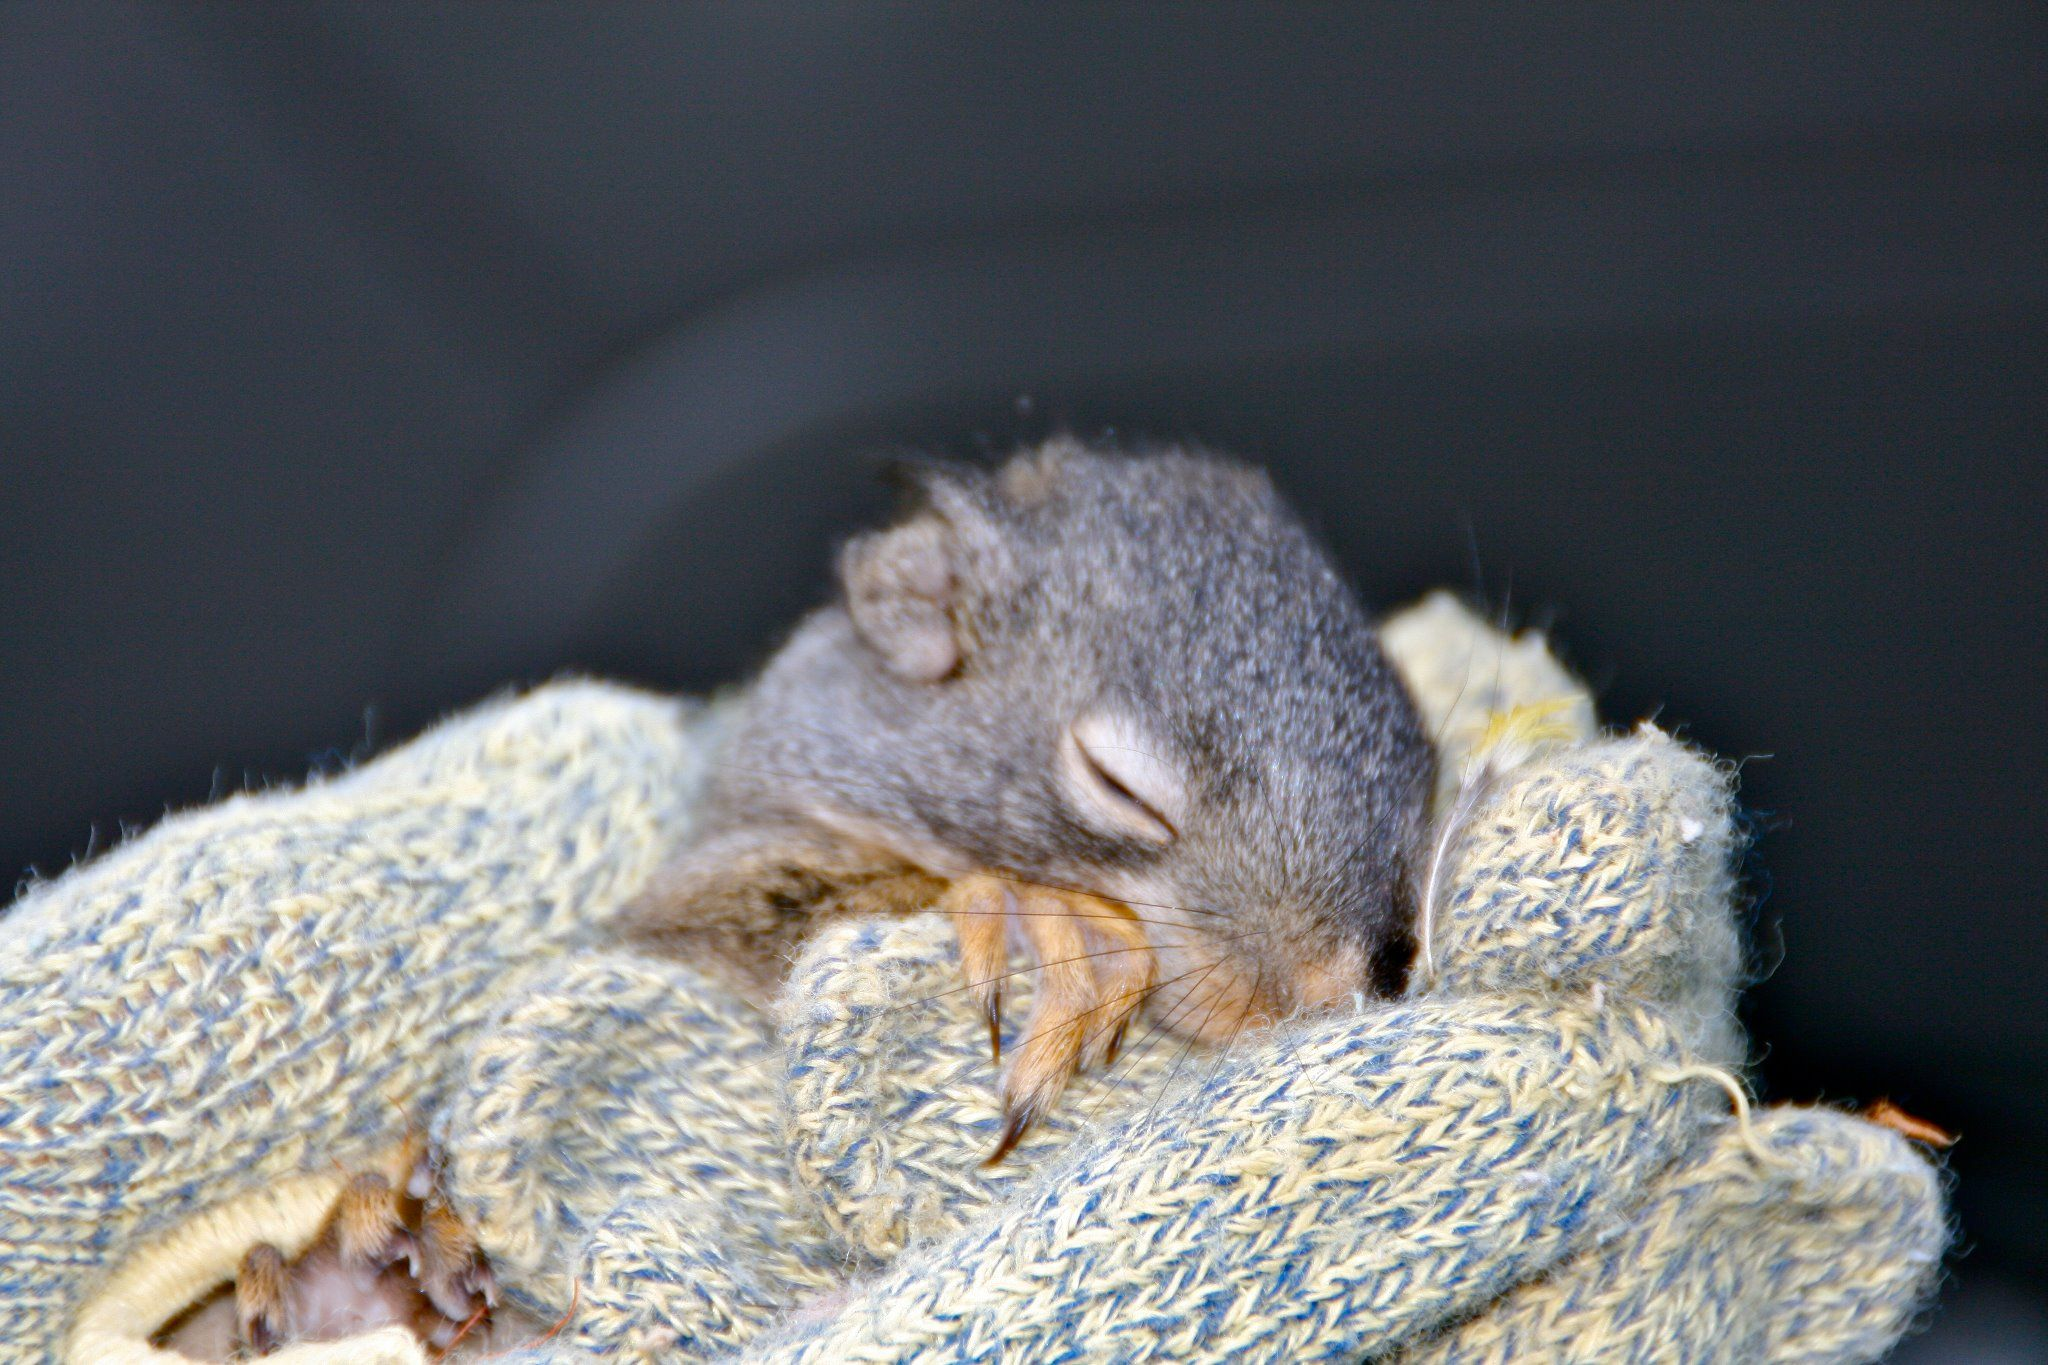 This is a baby squirrel my husband found in a tree after a tree falling project. Being the amazing man he is he immediately contacted our local wildlife rescue center and this little guy is now thriving and was recently released back in the area he came from.